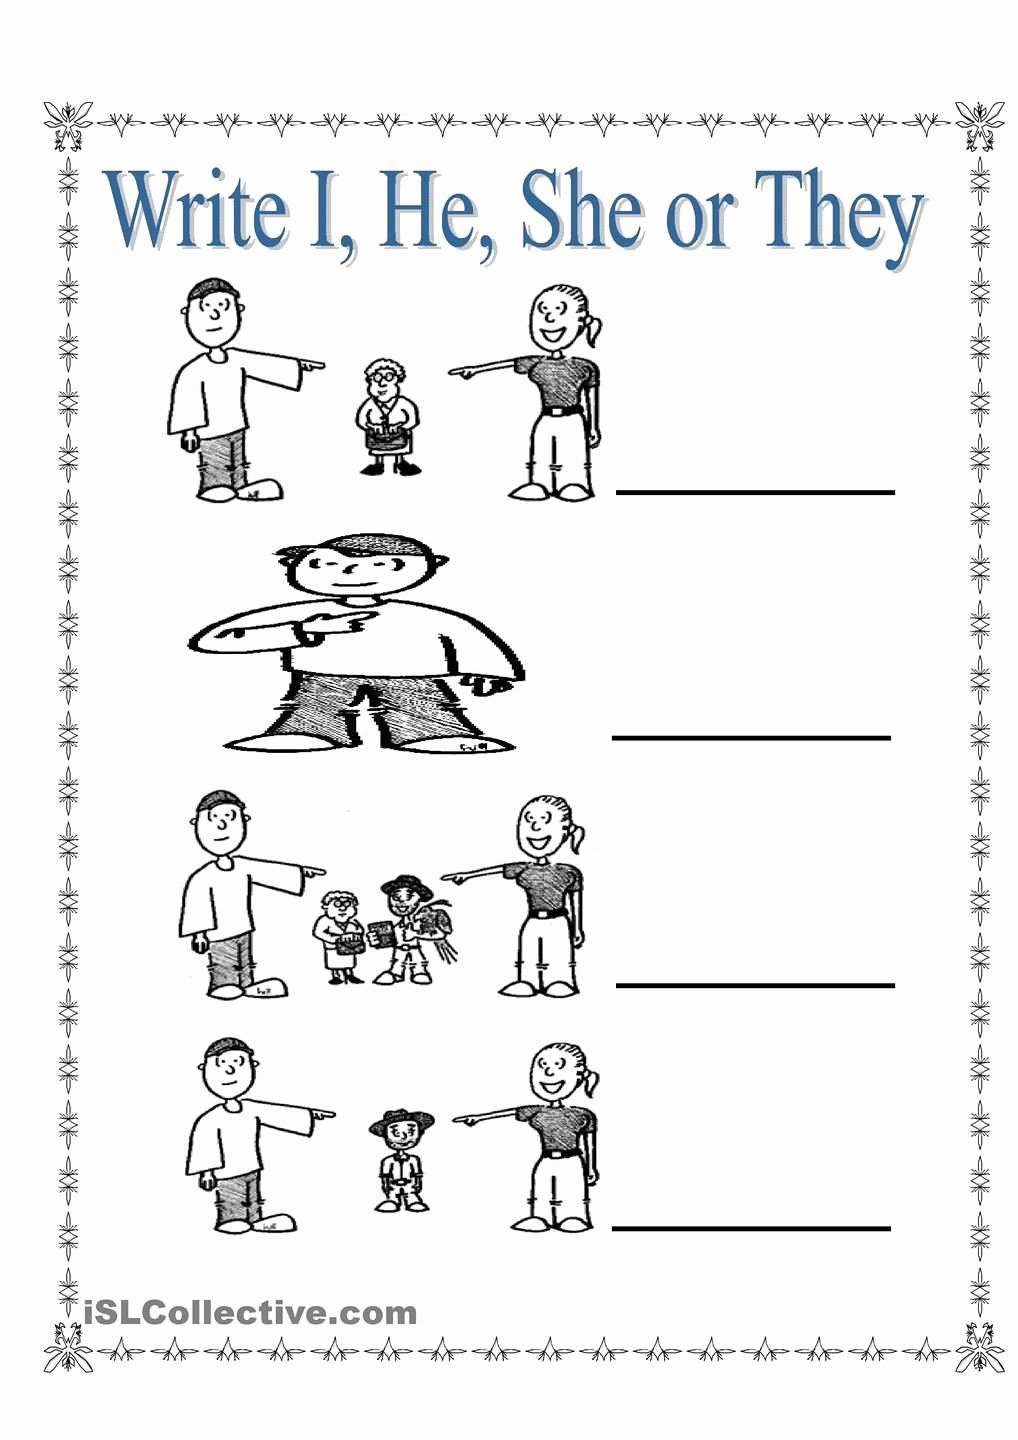 Personal Pronouns Worksheets for Preschoolers Awesome Personal Pronouns I She He and they